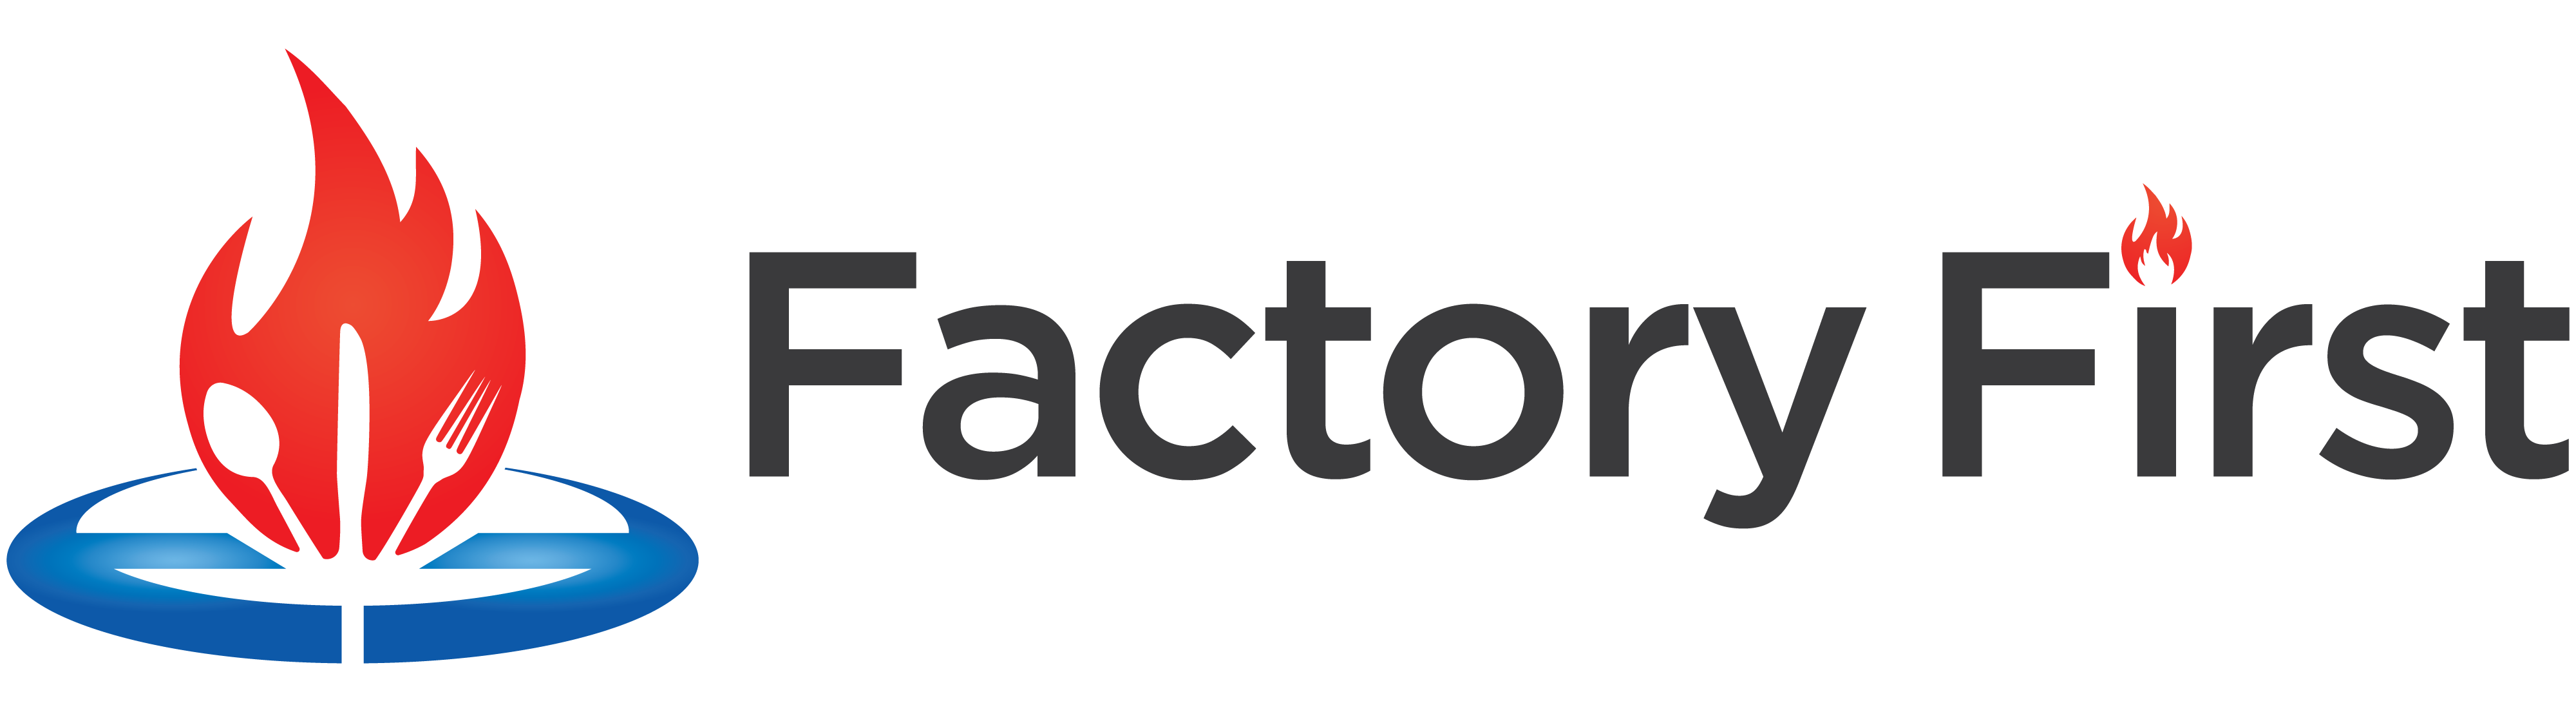 Factory First logo